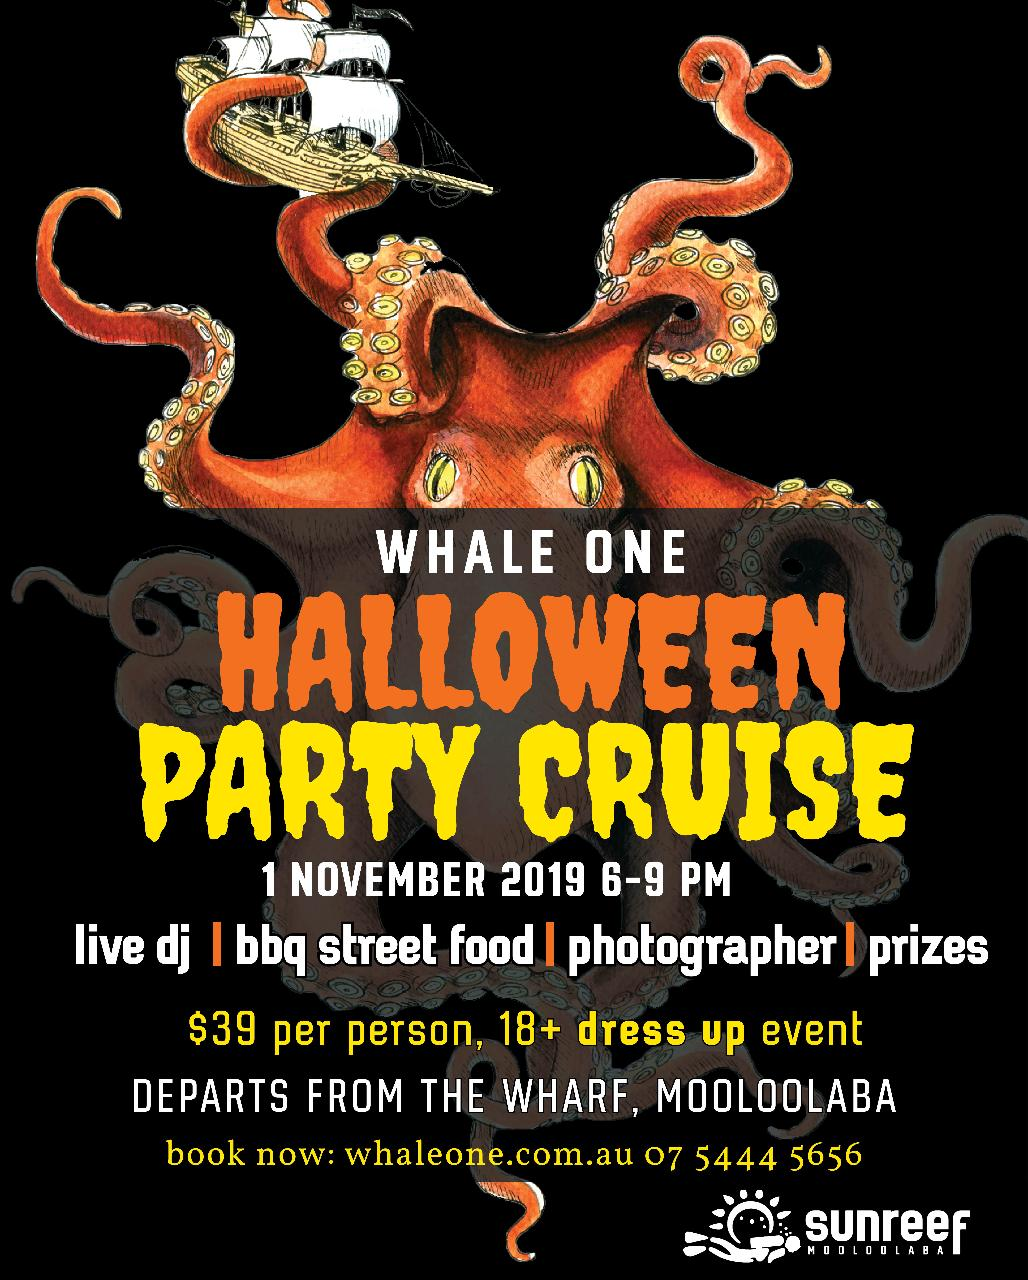 Halloween Party Cruise on Whale One